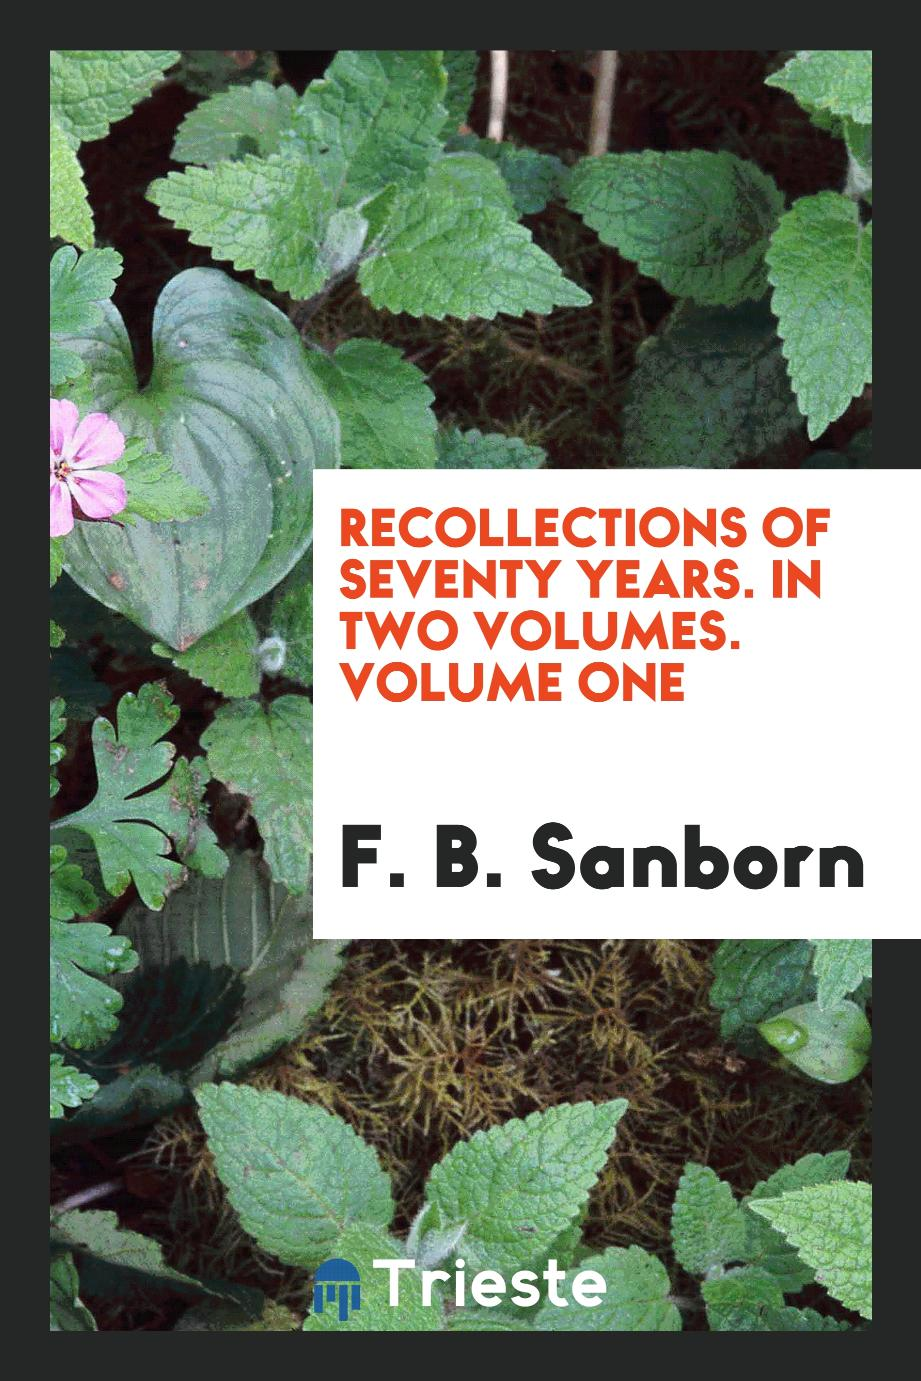 Recollections of seventy years. In two volumes. Volume one